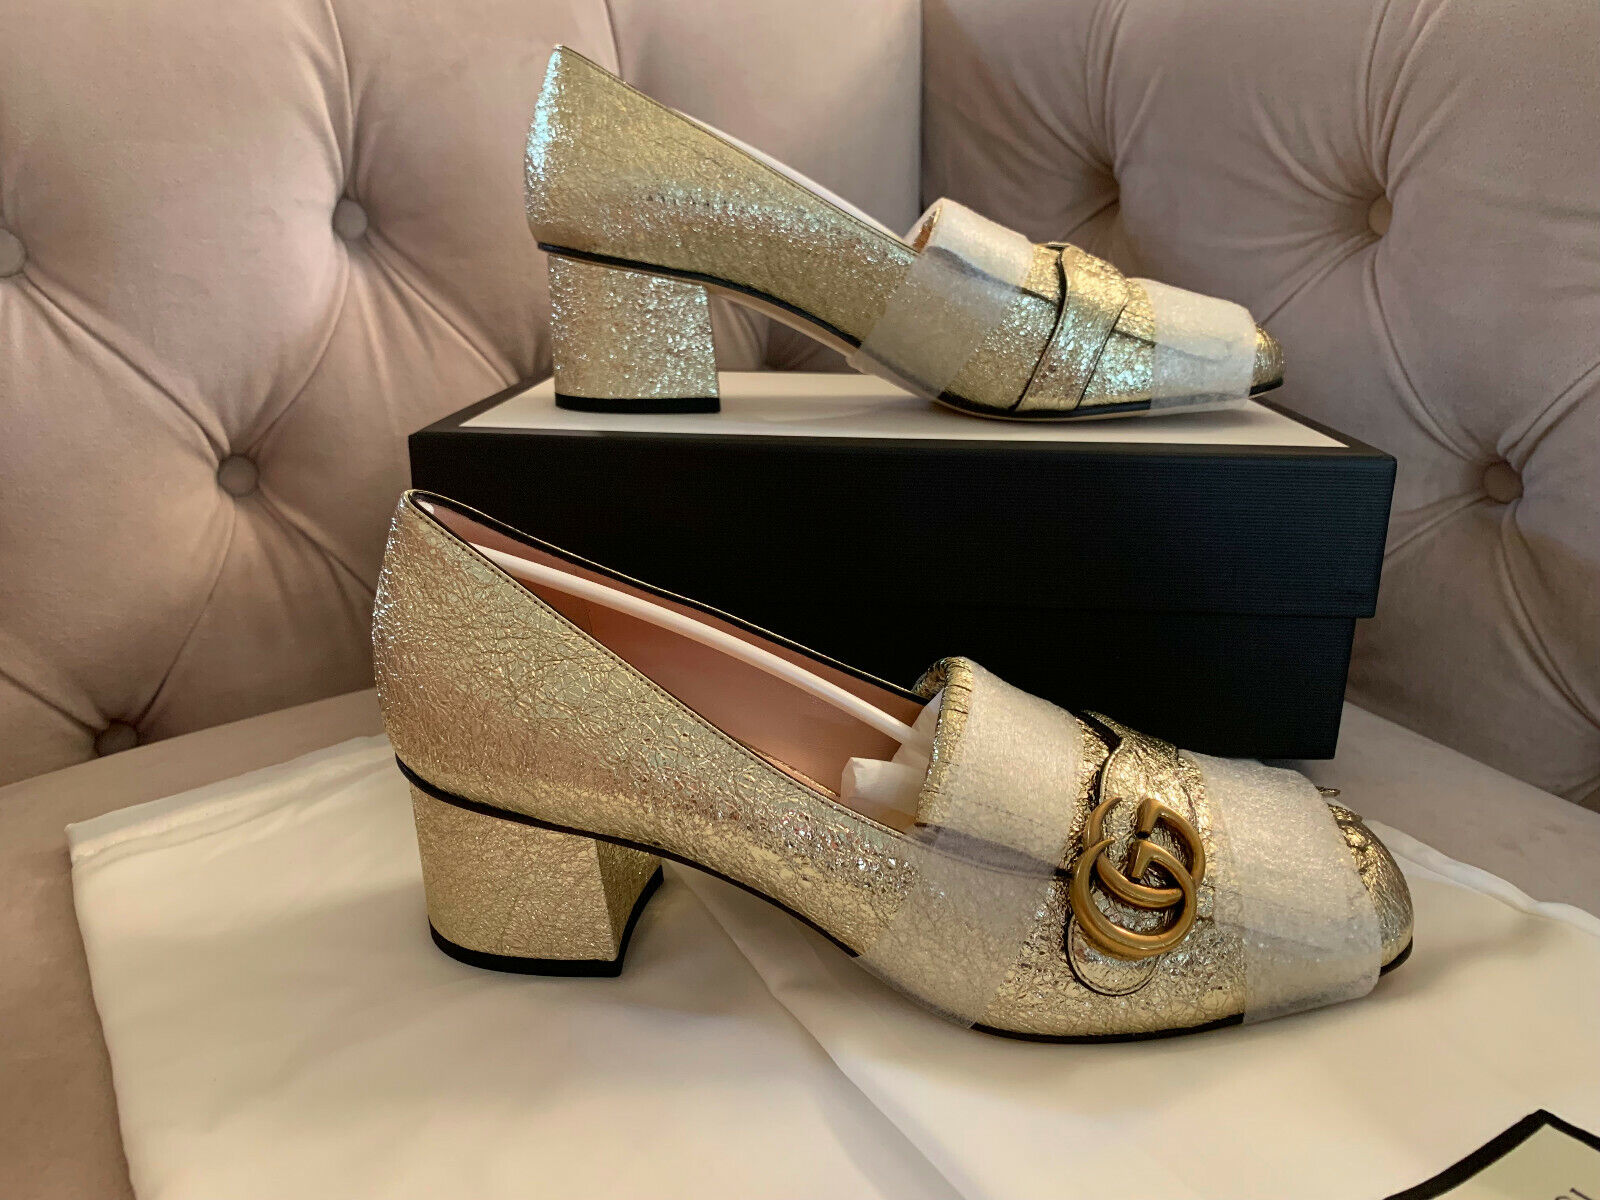 New Gucci Women GG Marmont 55mm Leather Loafer Pumps Platino Gold Sz 42 NIB $830